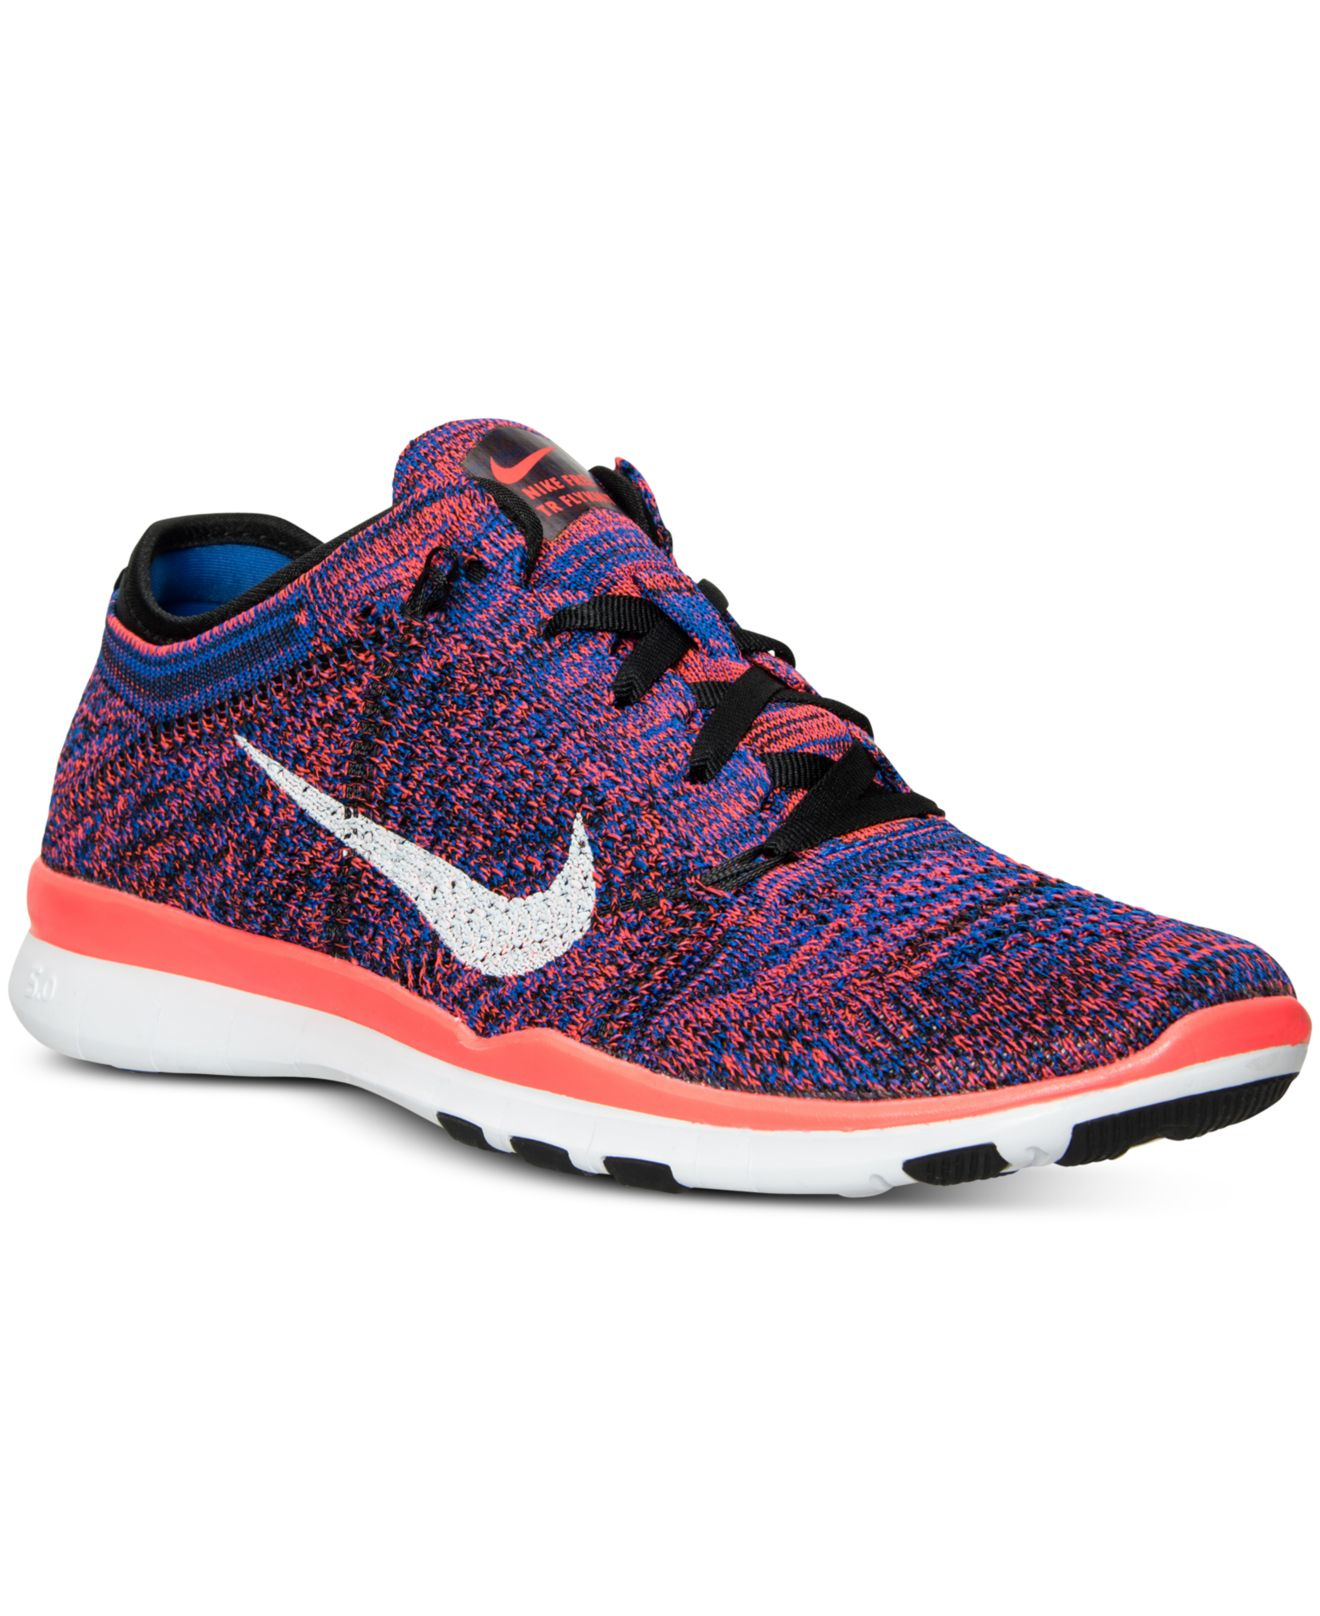 pretty nice 1f1a7 ffb27 Lyst - Nike Women s Free Tr Flyknit Training Sneakers From Finish ...